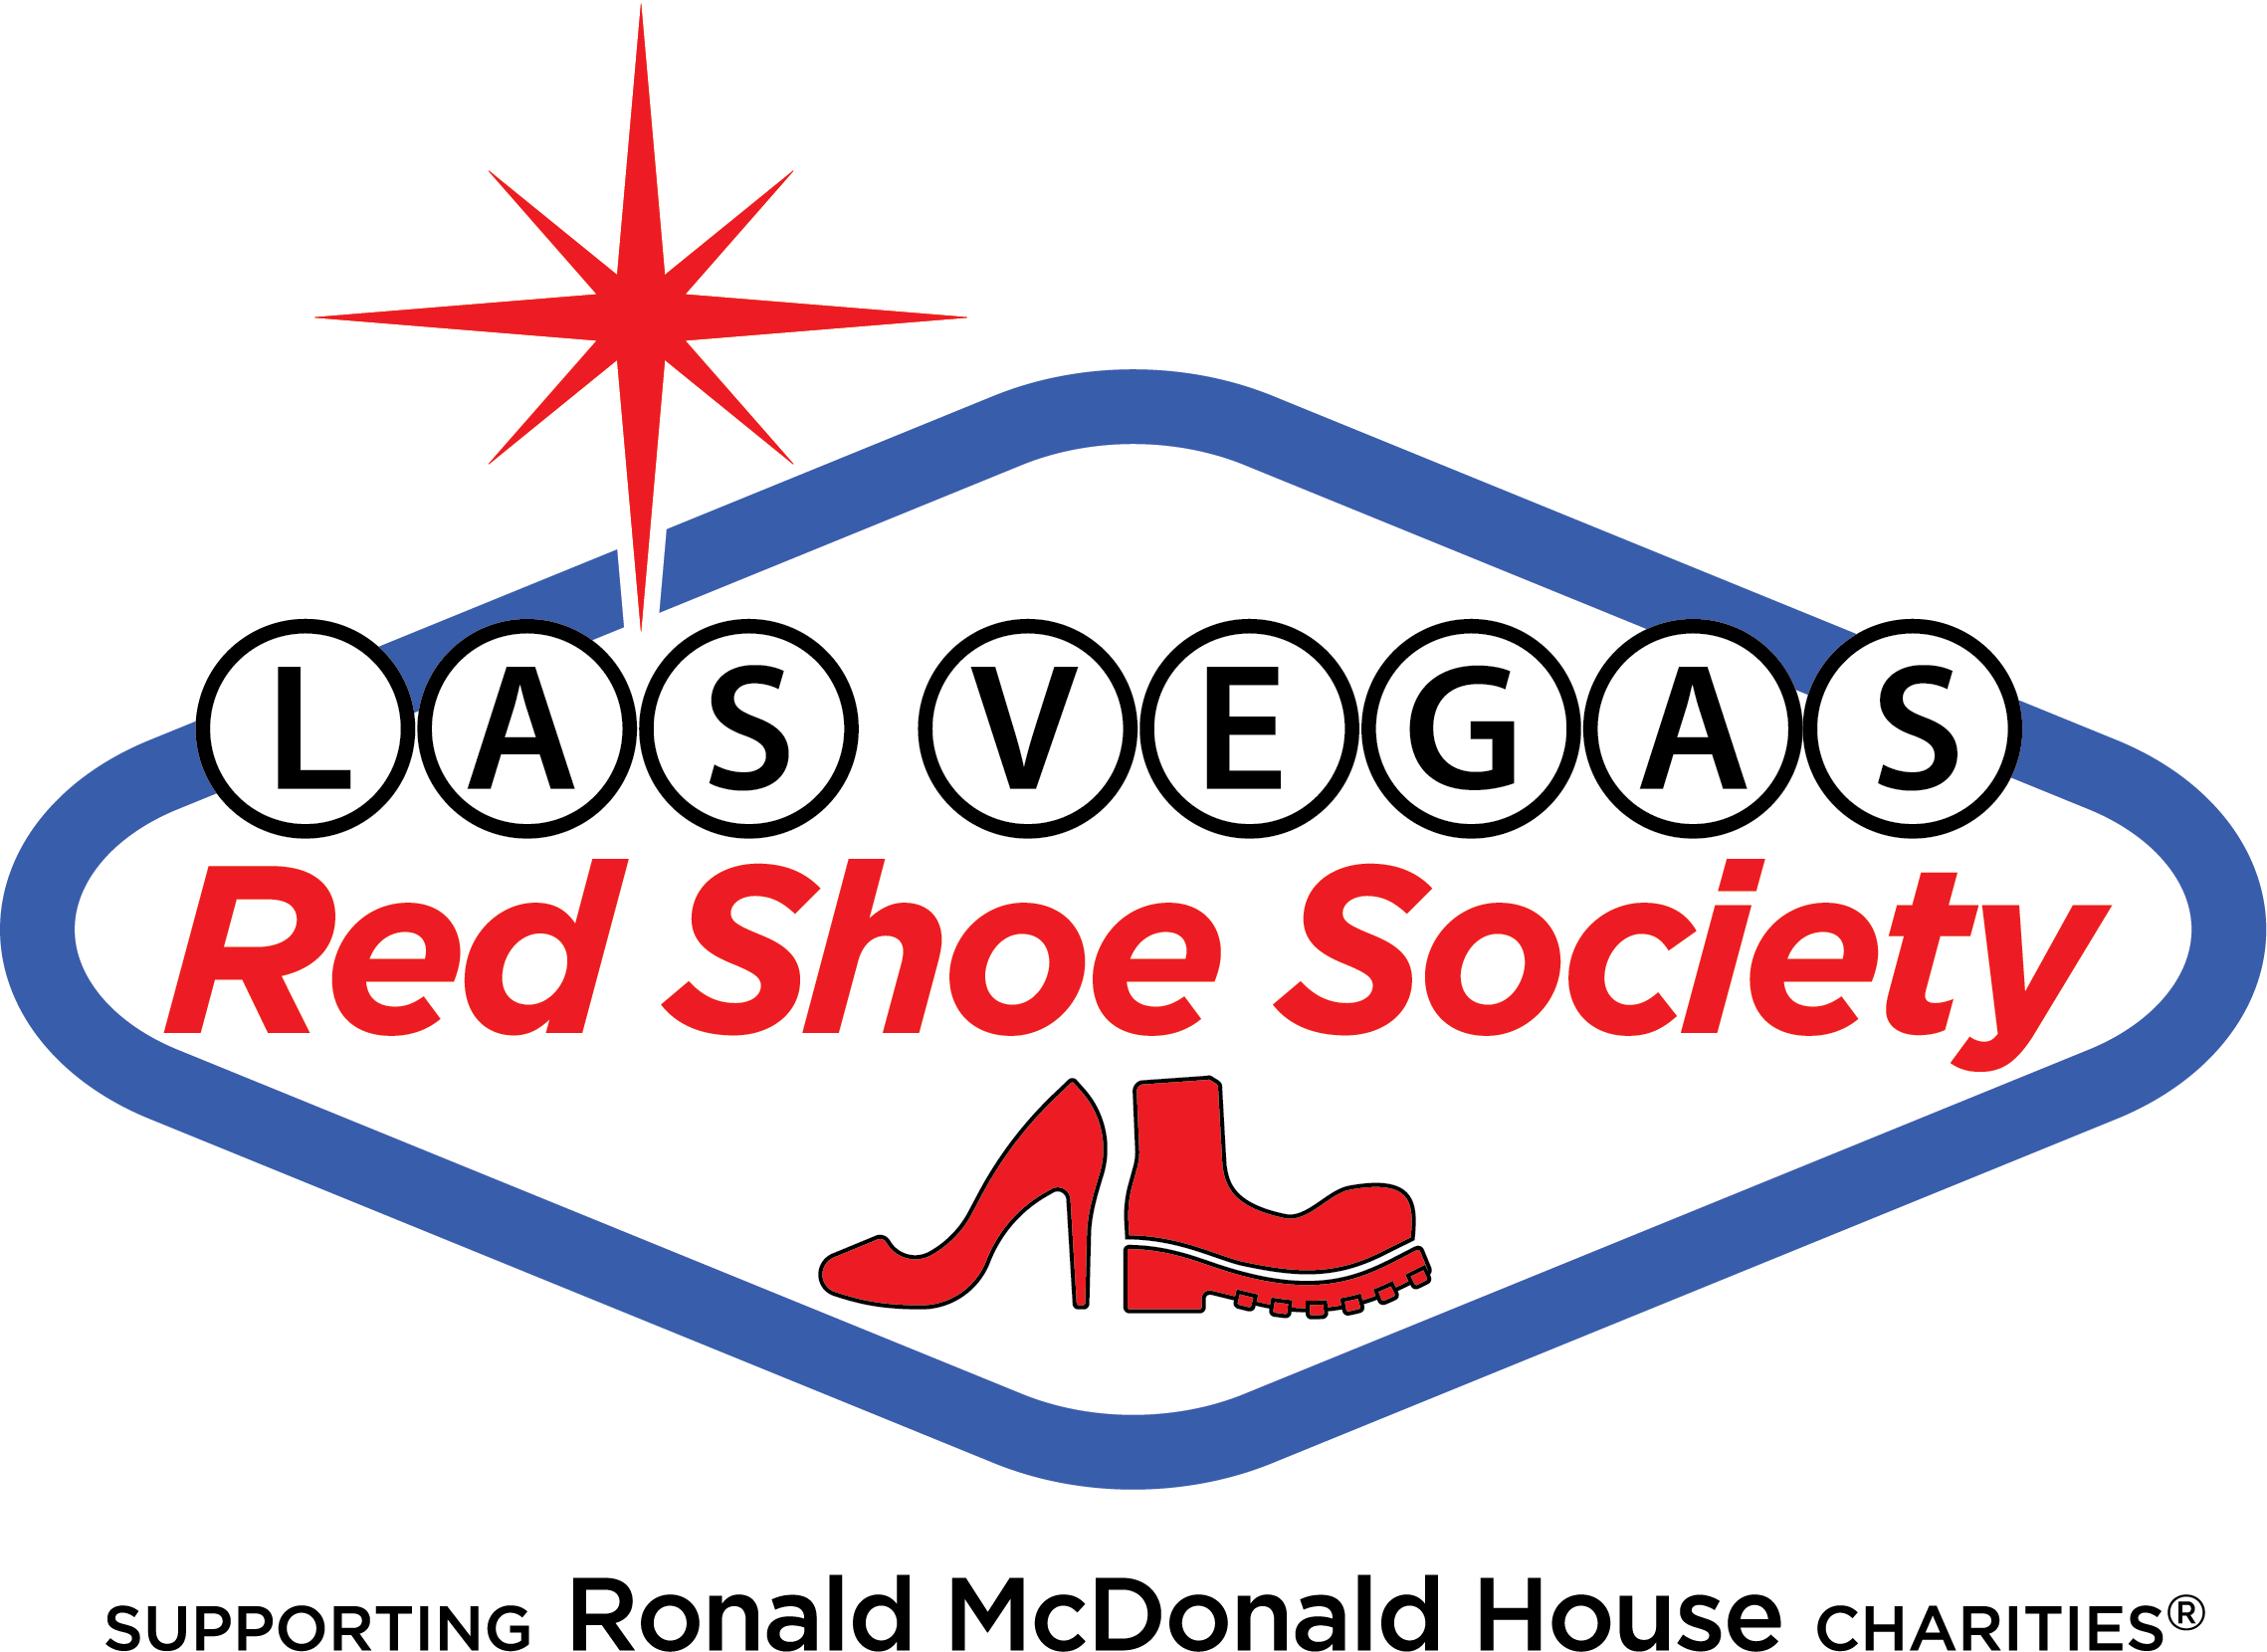 Red Shoe Society logo with TM